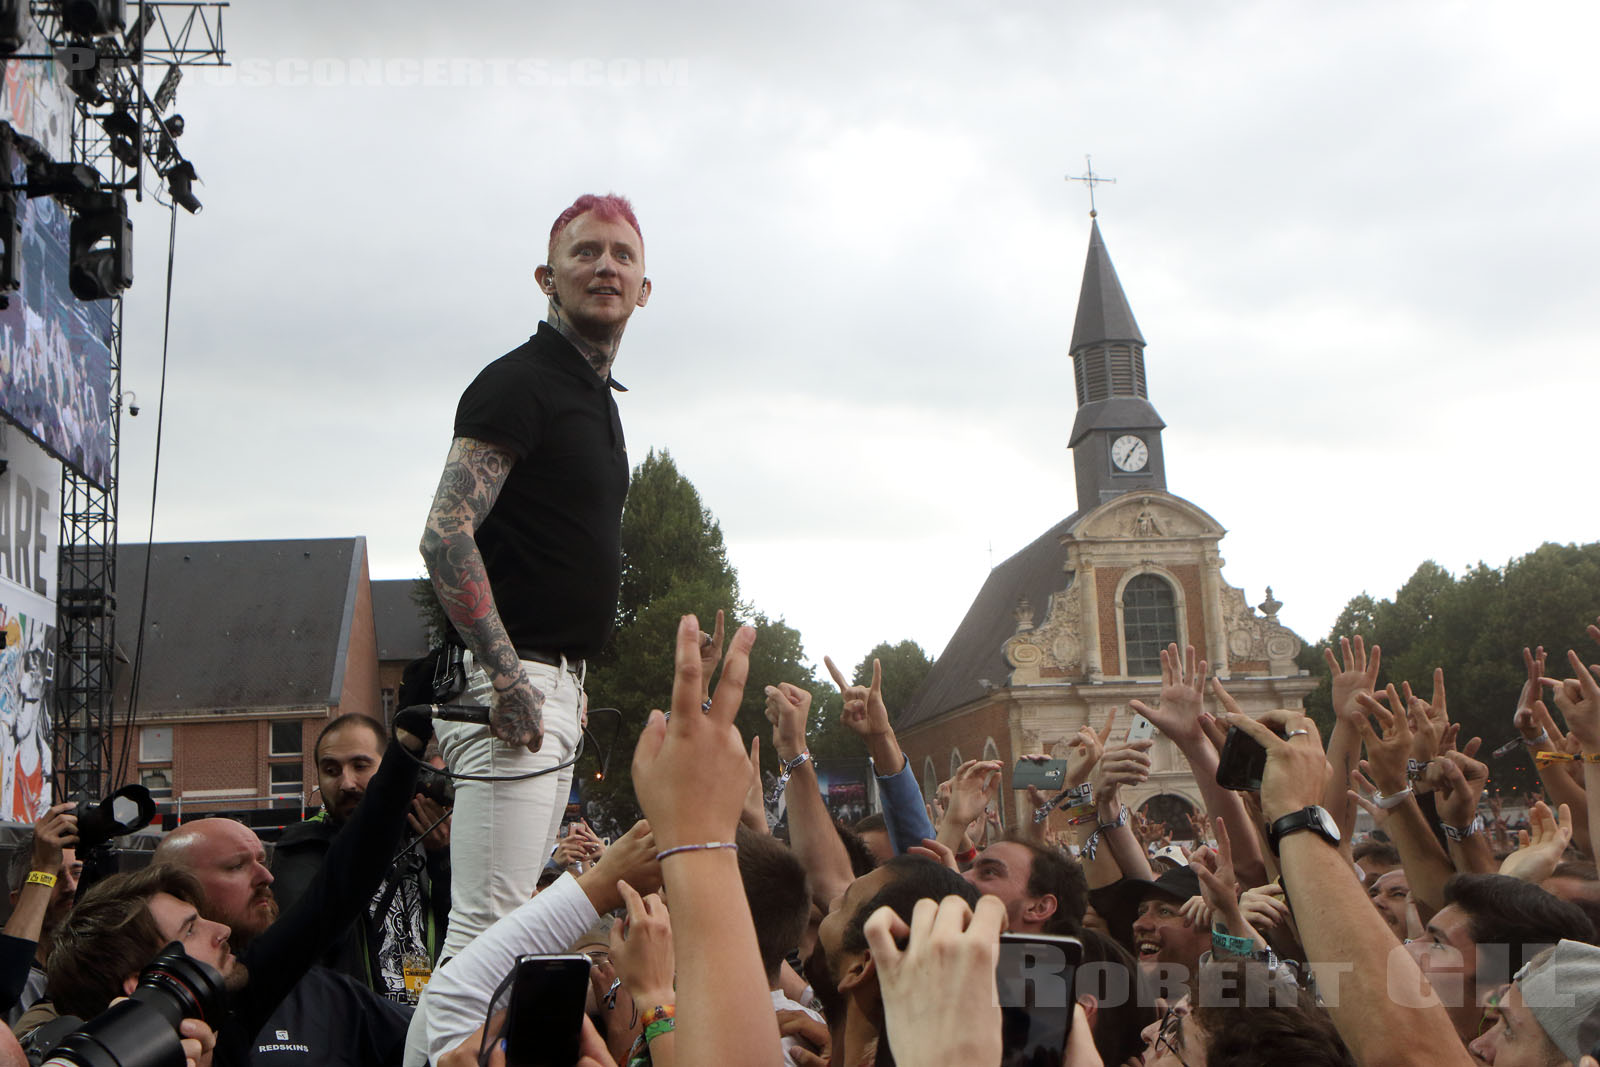 FRANK CARTER AND THE RATTLESNAKES - 2017-06-30 - ARRAS - La Citadelle - Main Stage